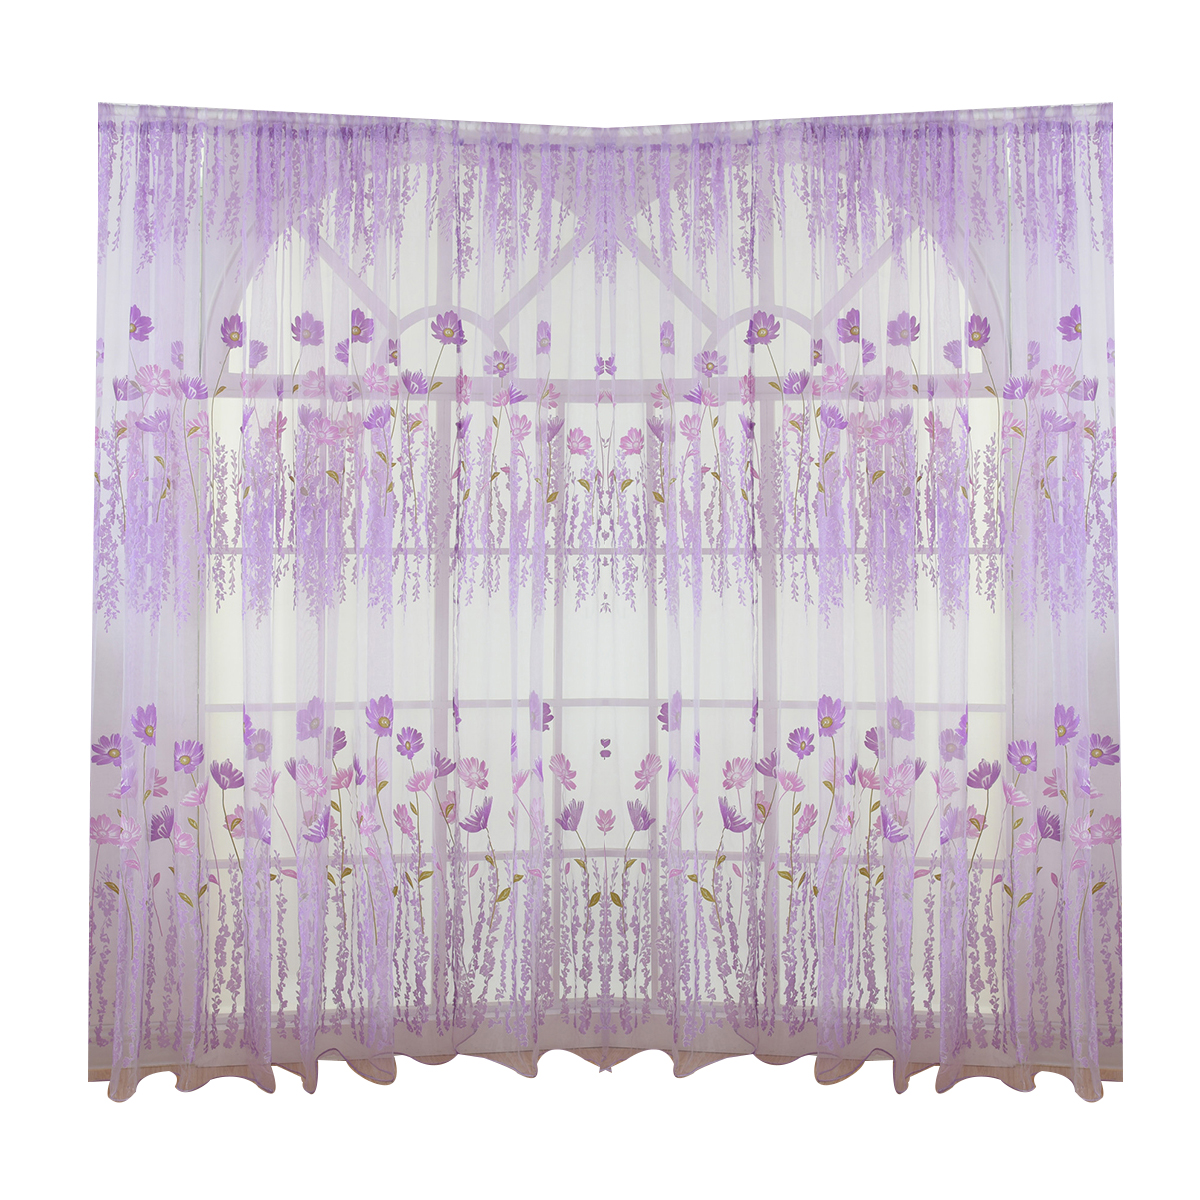 200x100cm Galsang Flower Sheer Curtain Tulle Window Treatment Voile Drape Valance (Blue) by